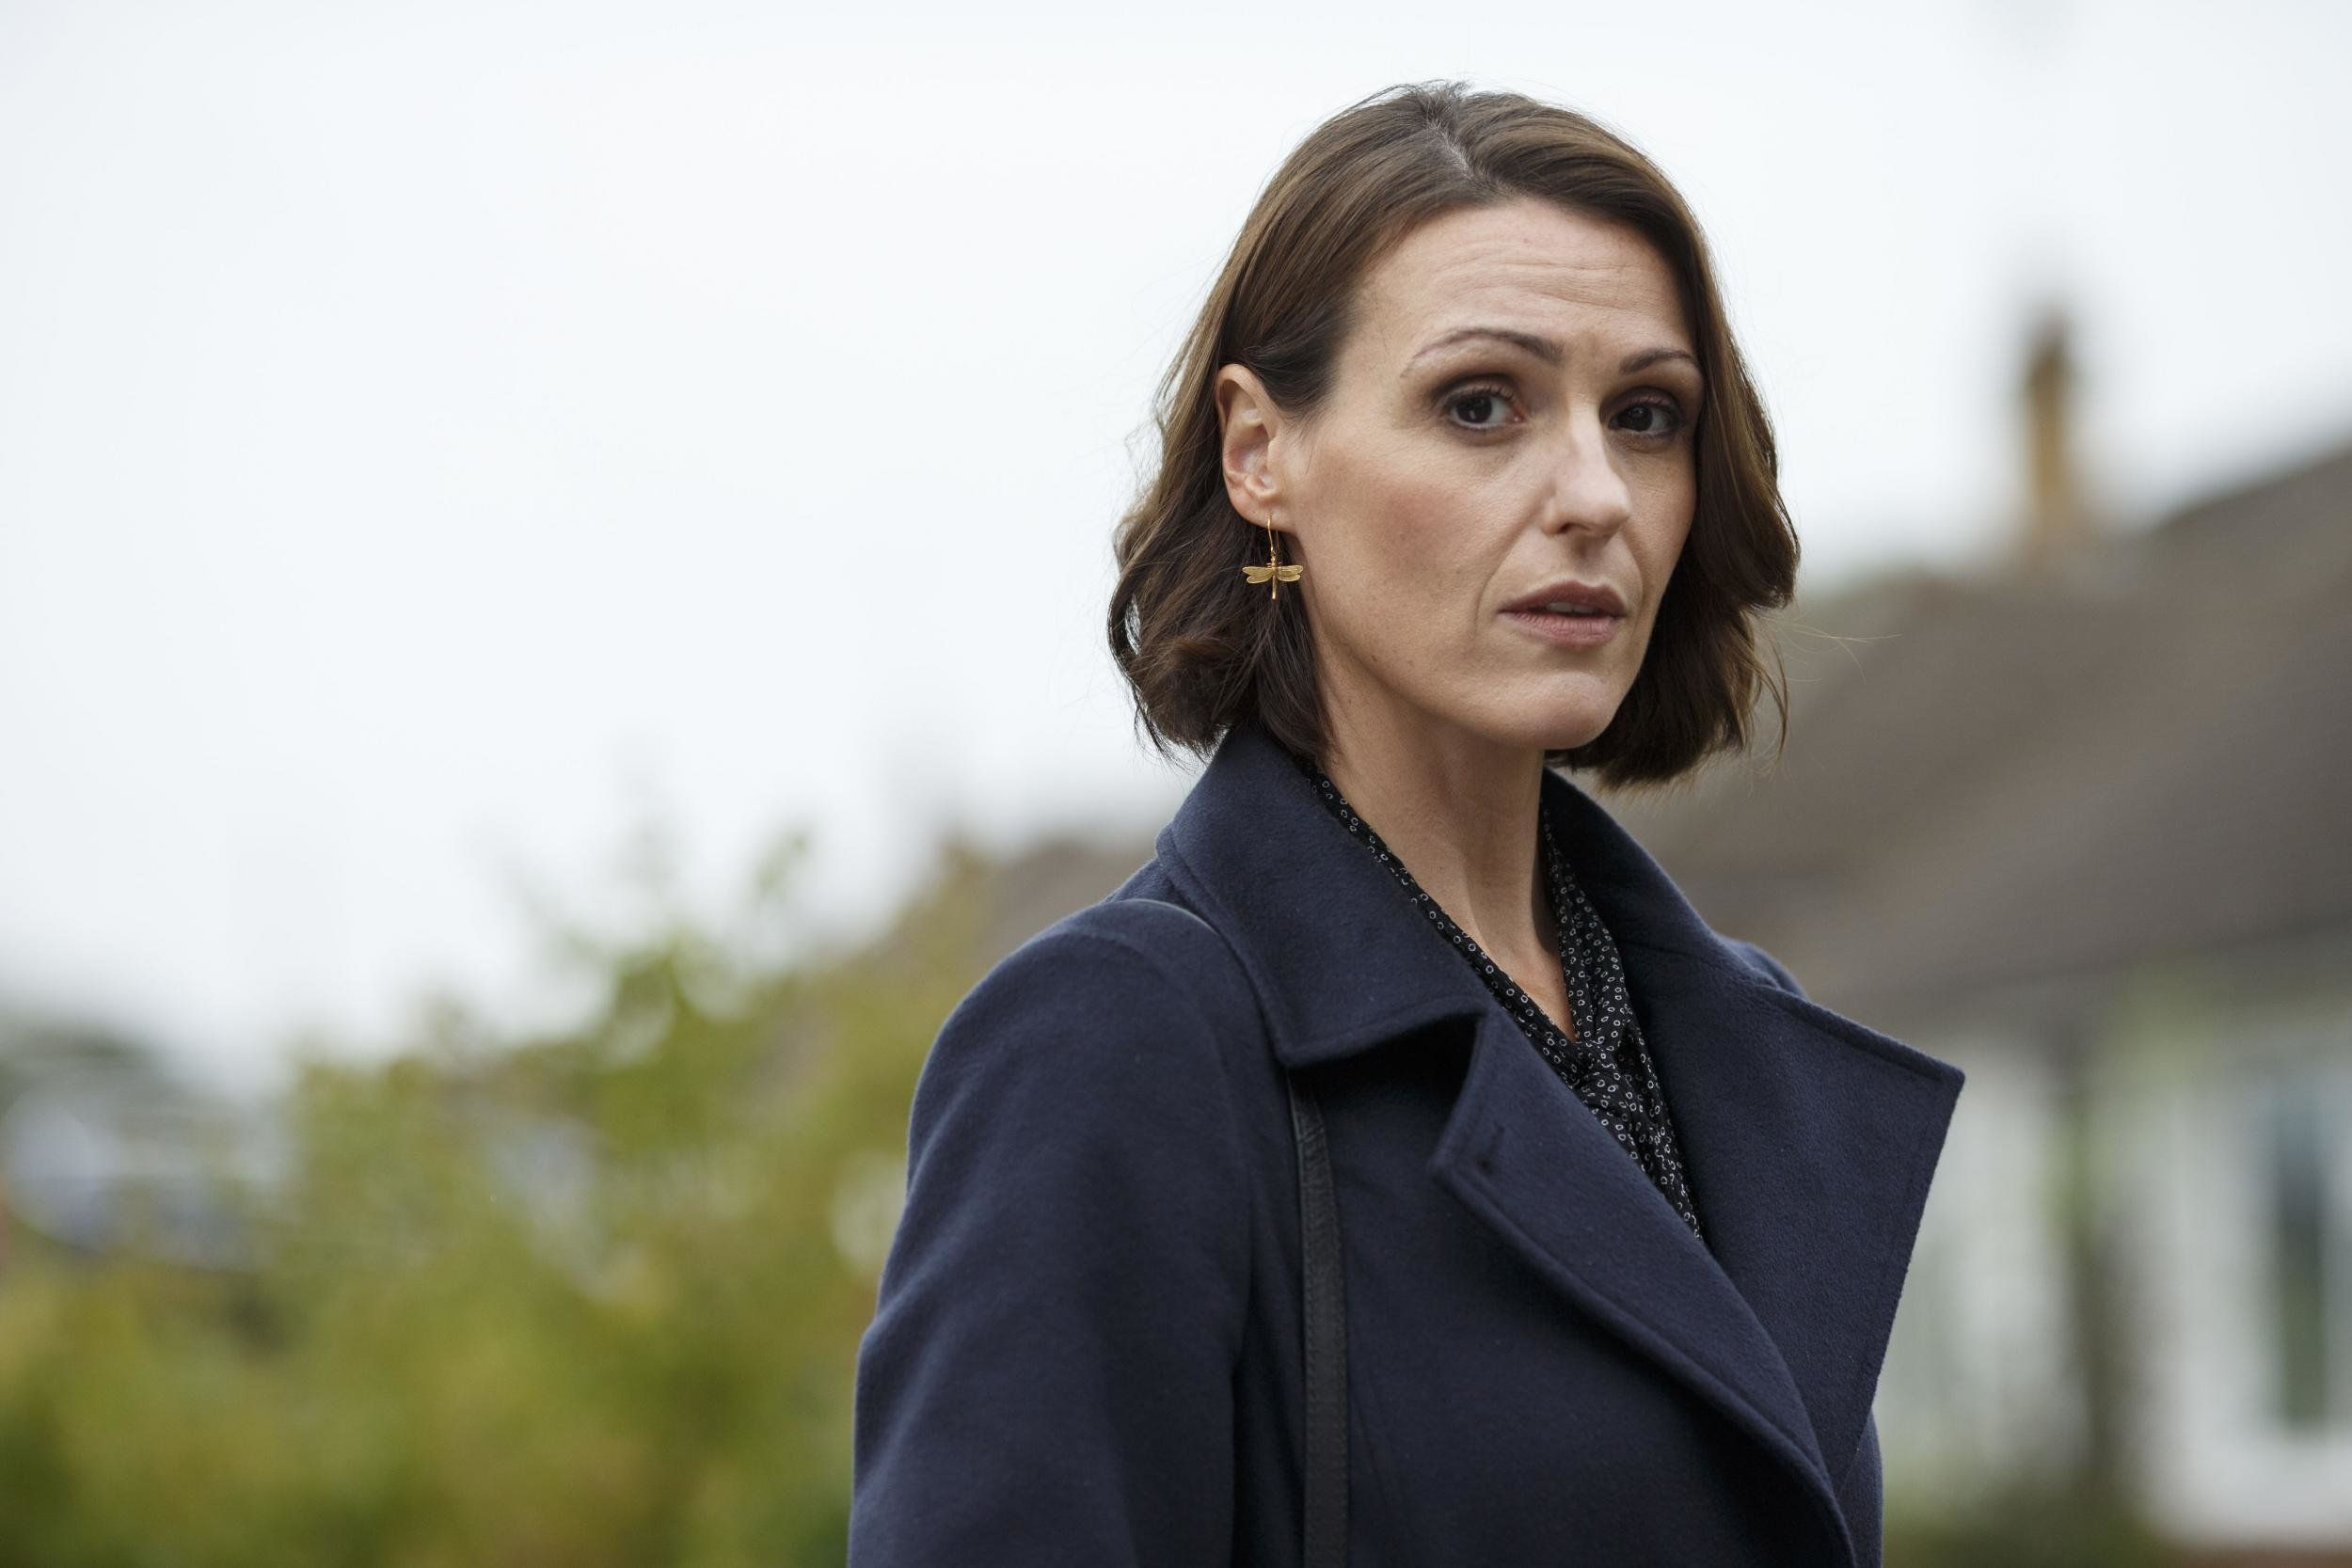 'Doctor Foster' Creator Hints Third Series Could Be On The Way (And What To